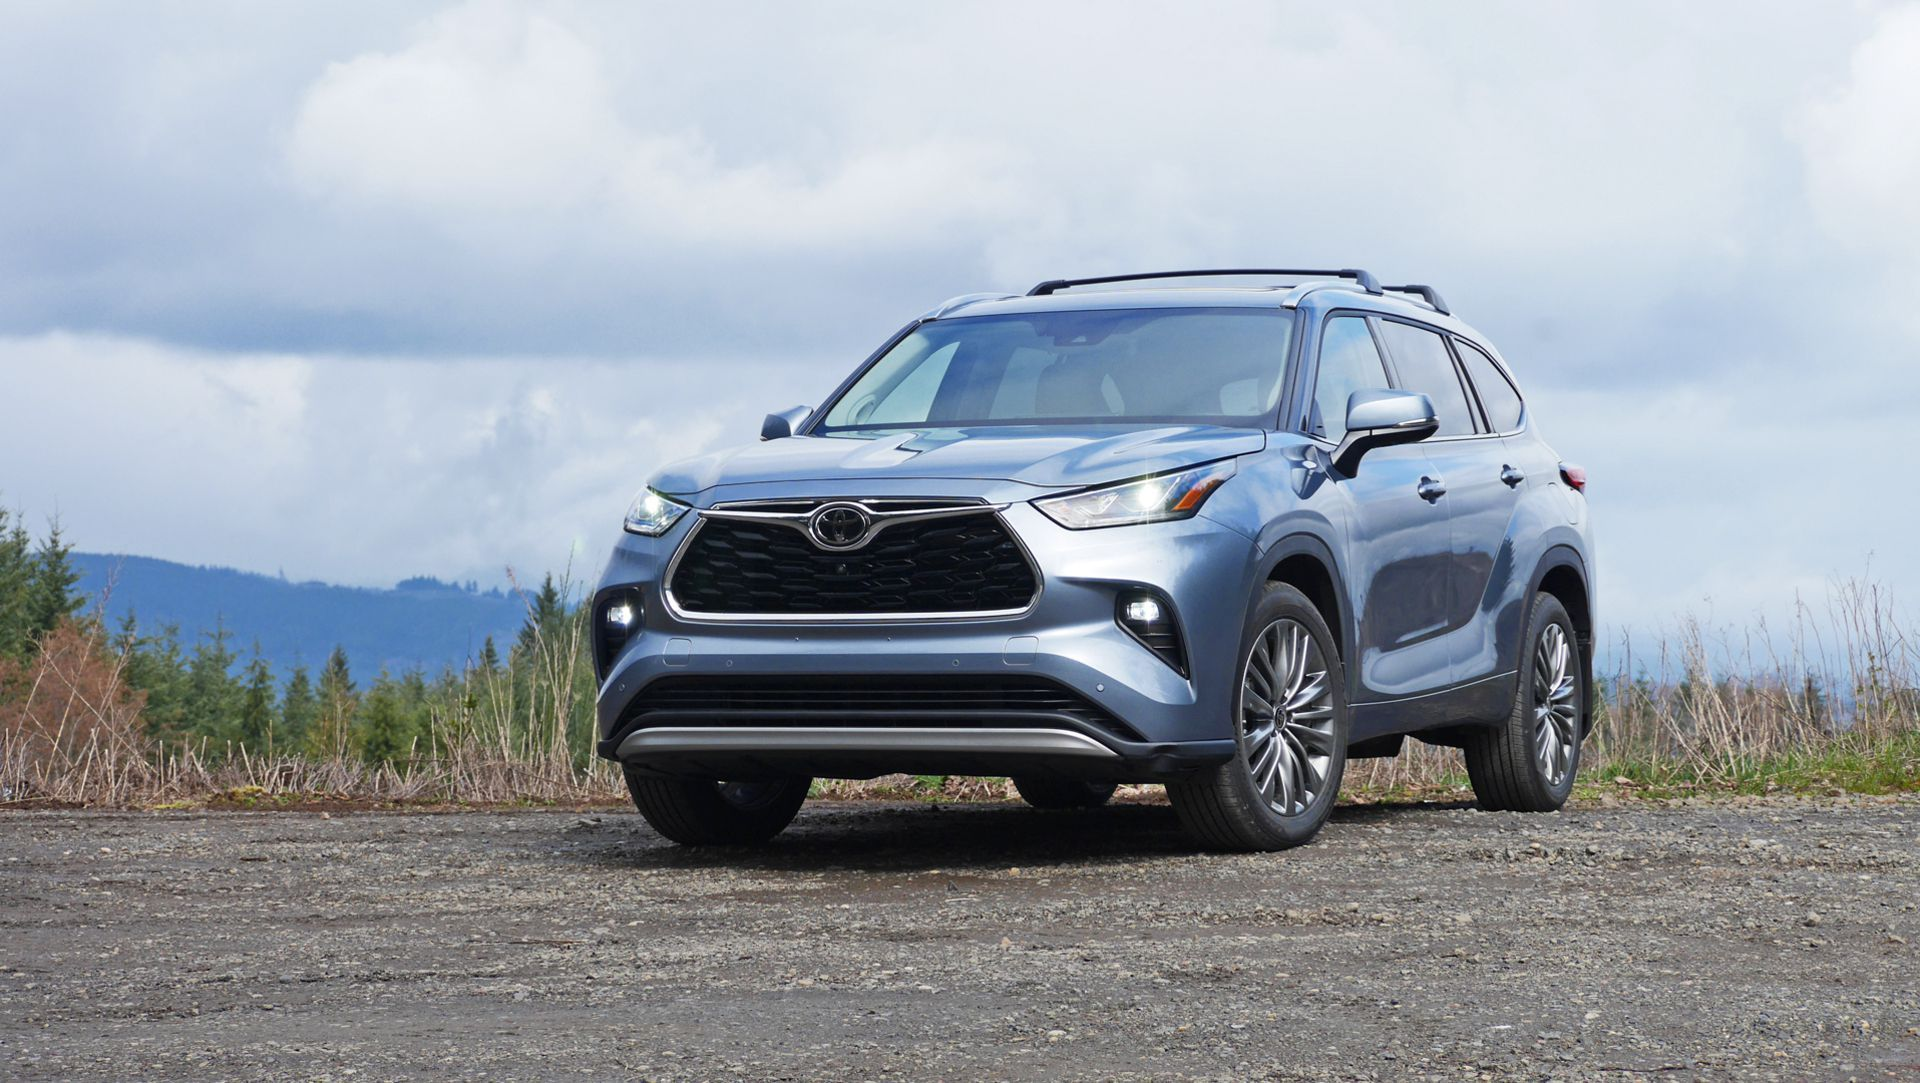 2021 Toyota Highlander Review | Price, specs, features and ...